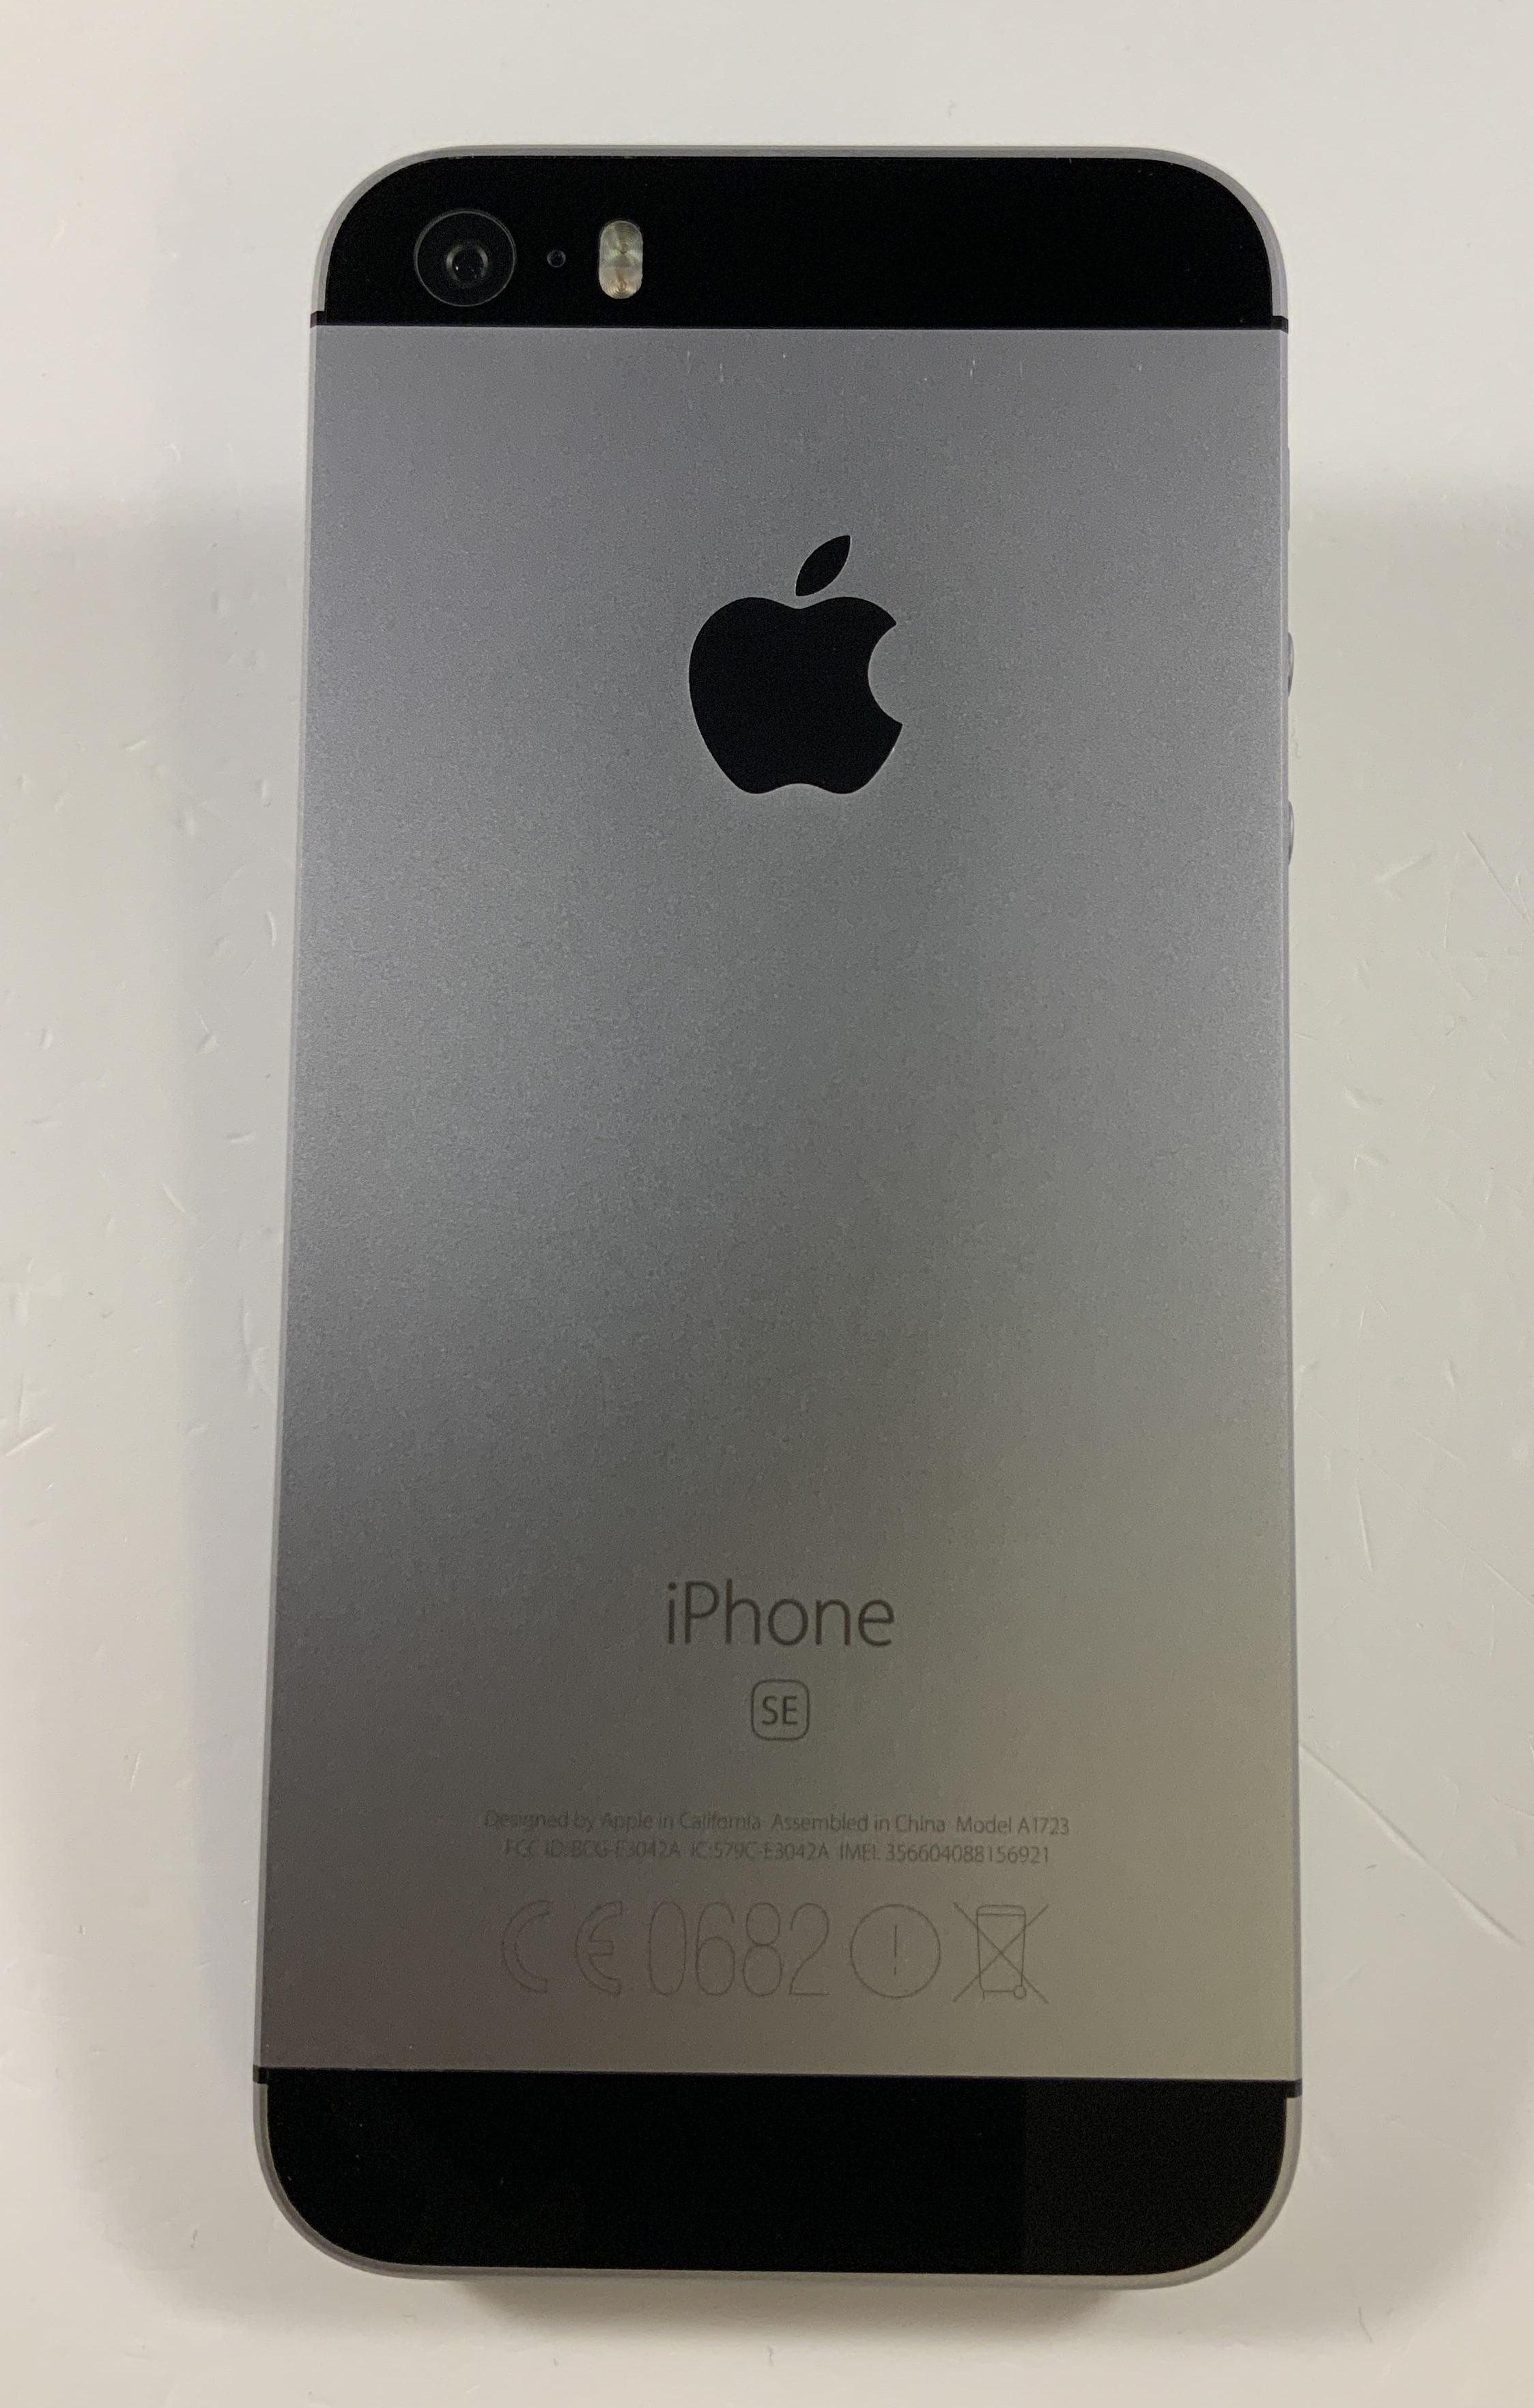 iPhone SE 32GB, 32GB, Space Gray, image 2